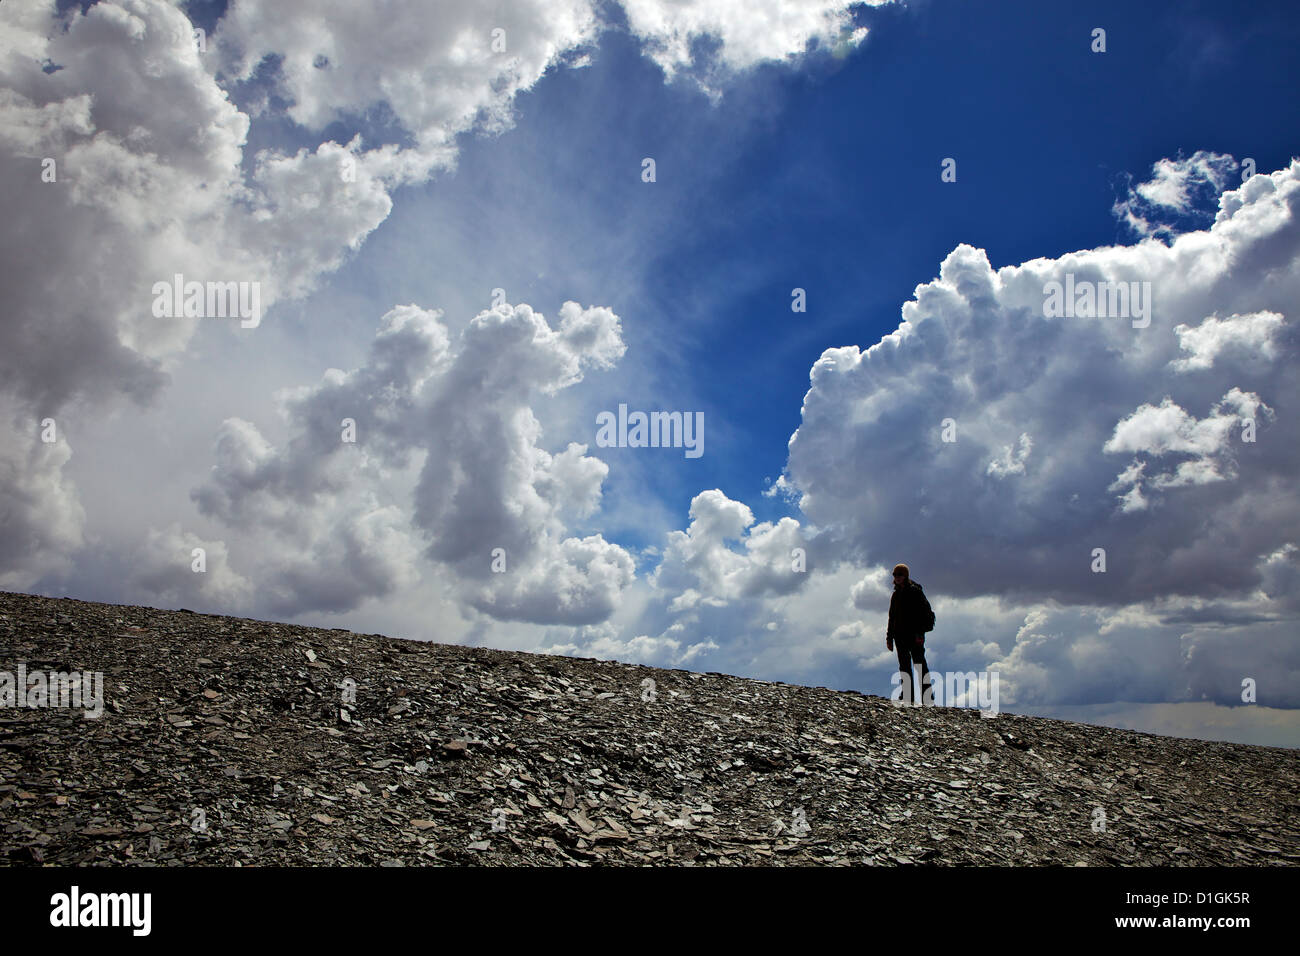 Climber In the clouds Mount Chacaltaya, Cordillera real, Bolivia, Andes, South America - Stock Image